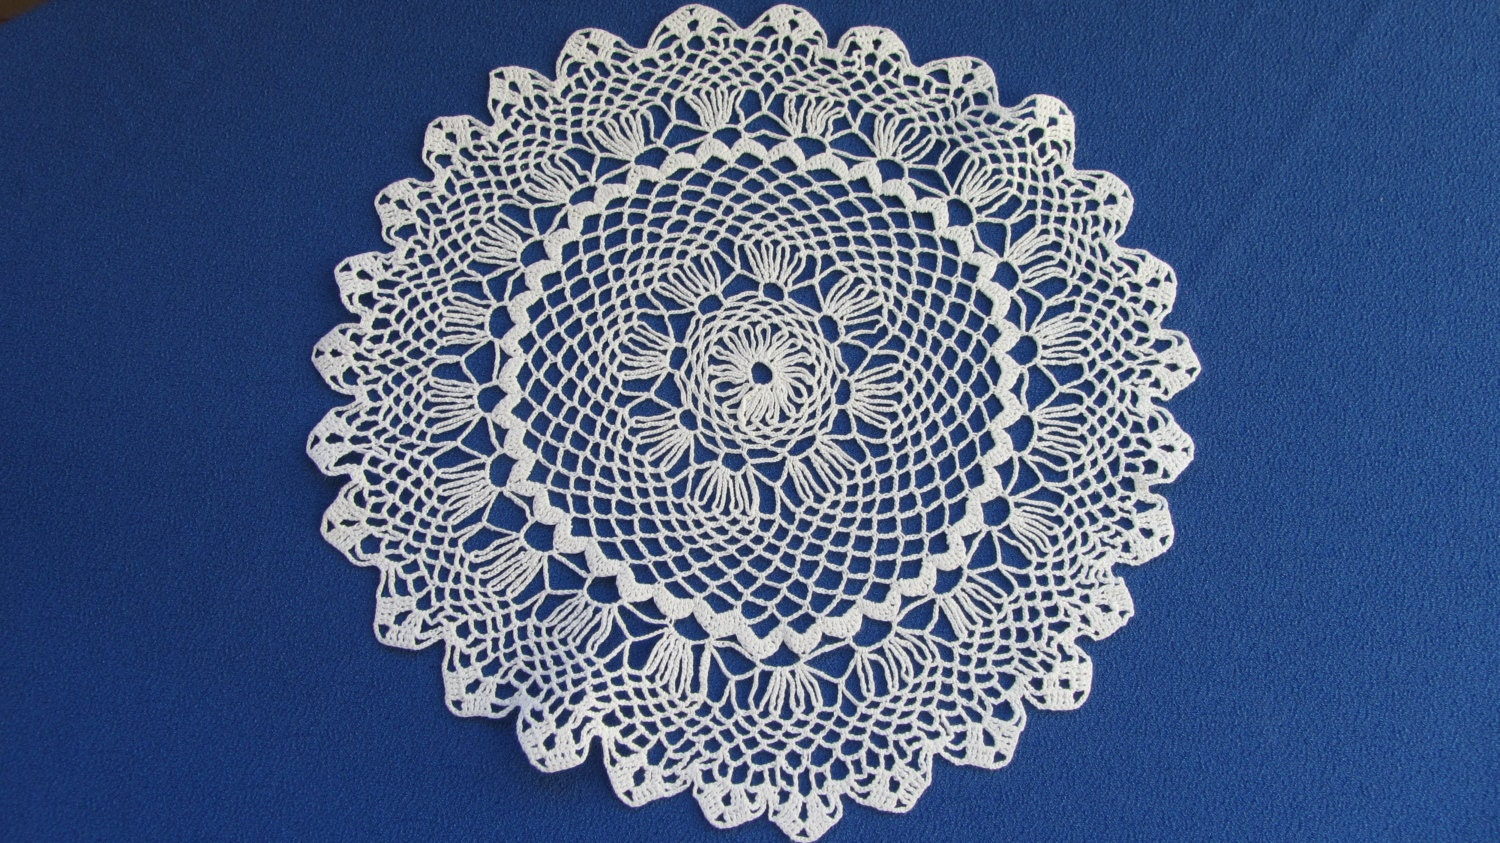 Vintage Crochet cotton USSR napkin, Crochet lace napkin, Cotton napkin, Cotton l